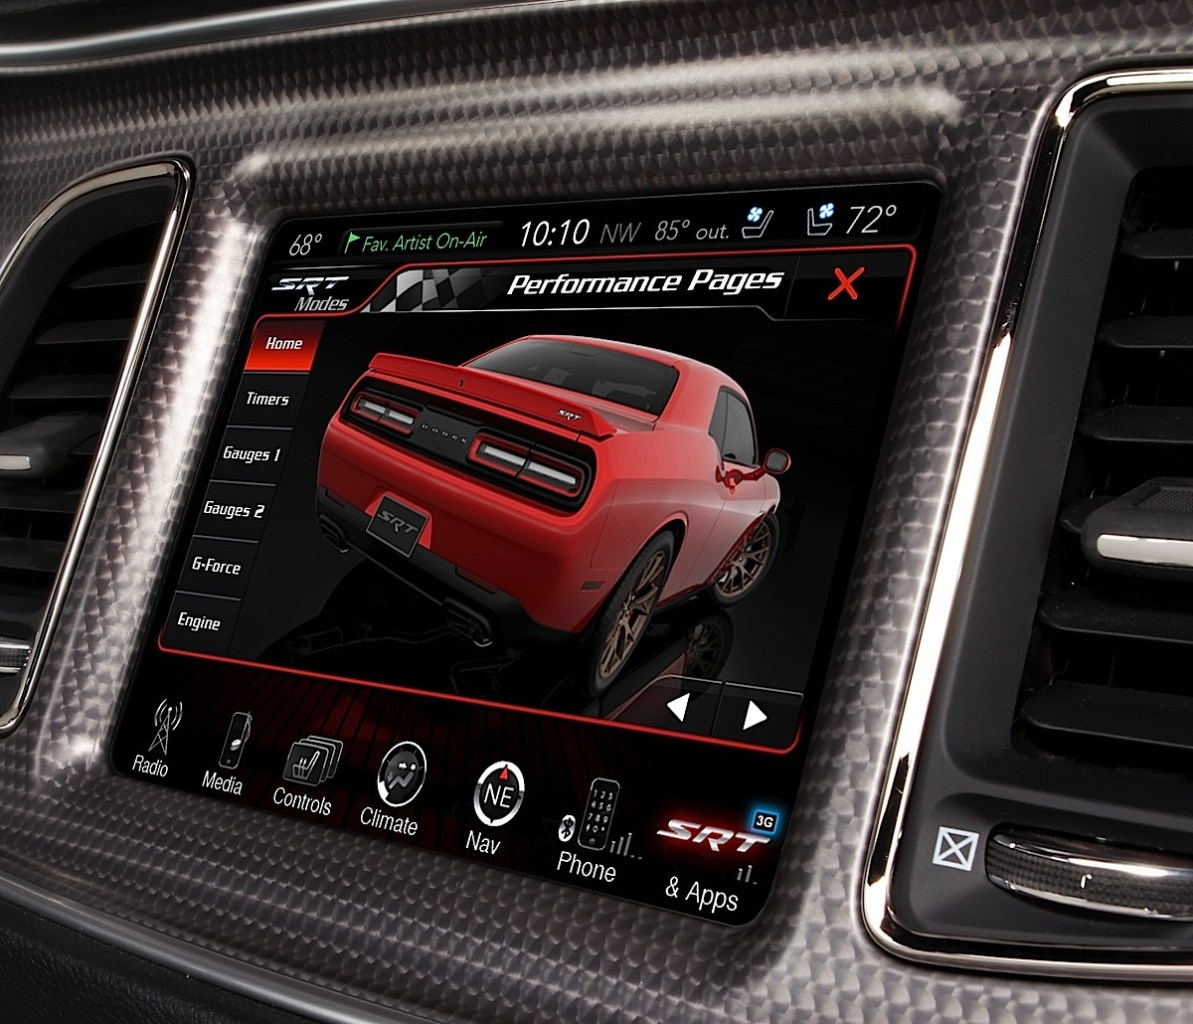 2015 Dodge Challenger SRT Hellcat 8.4 inch U-Connect Performance Pages Home screen